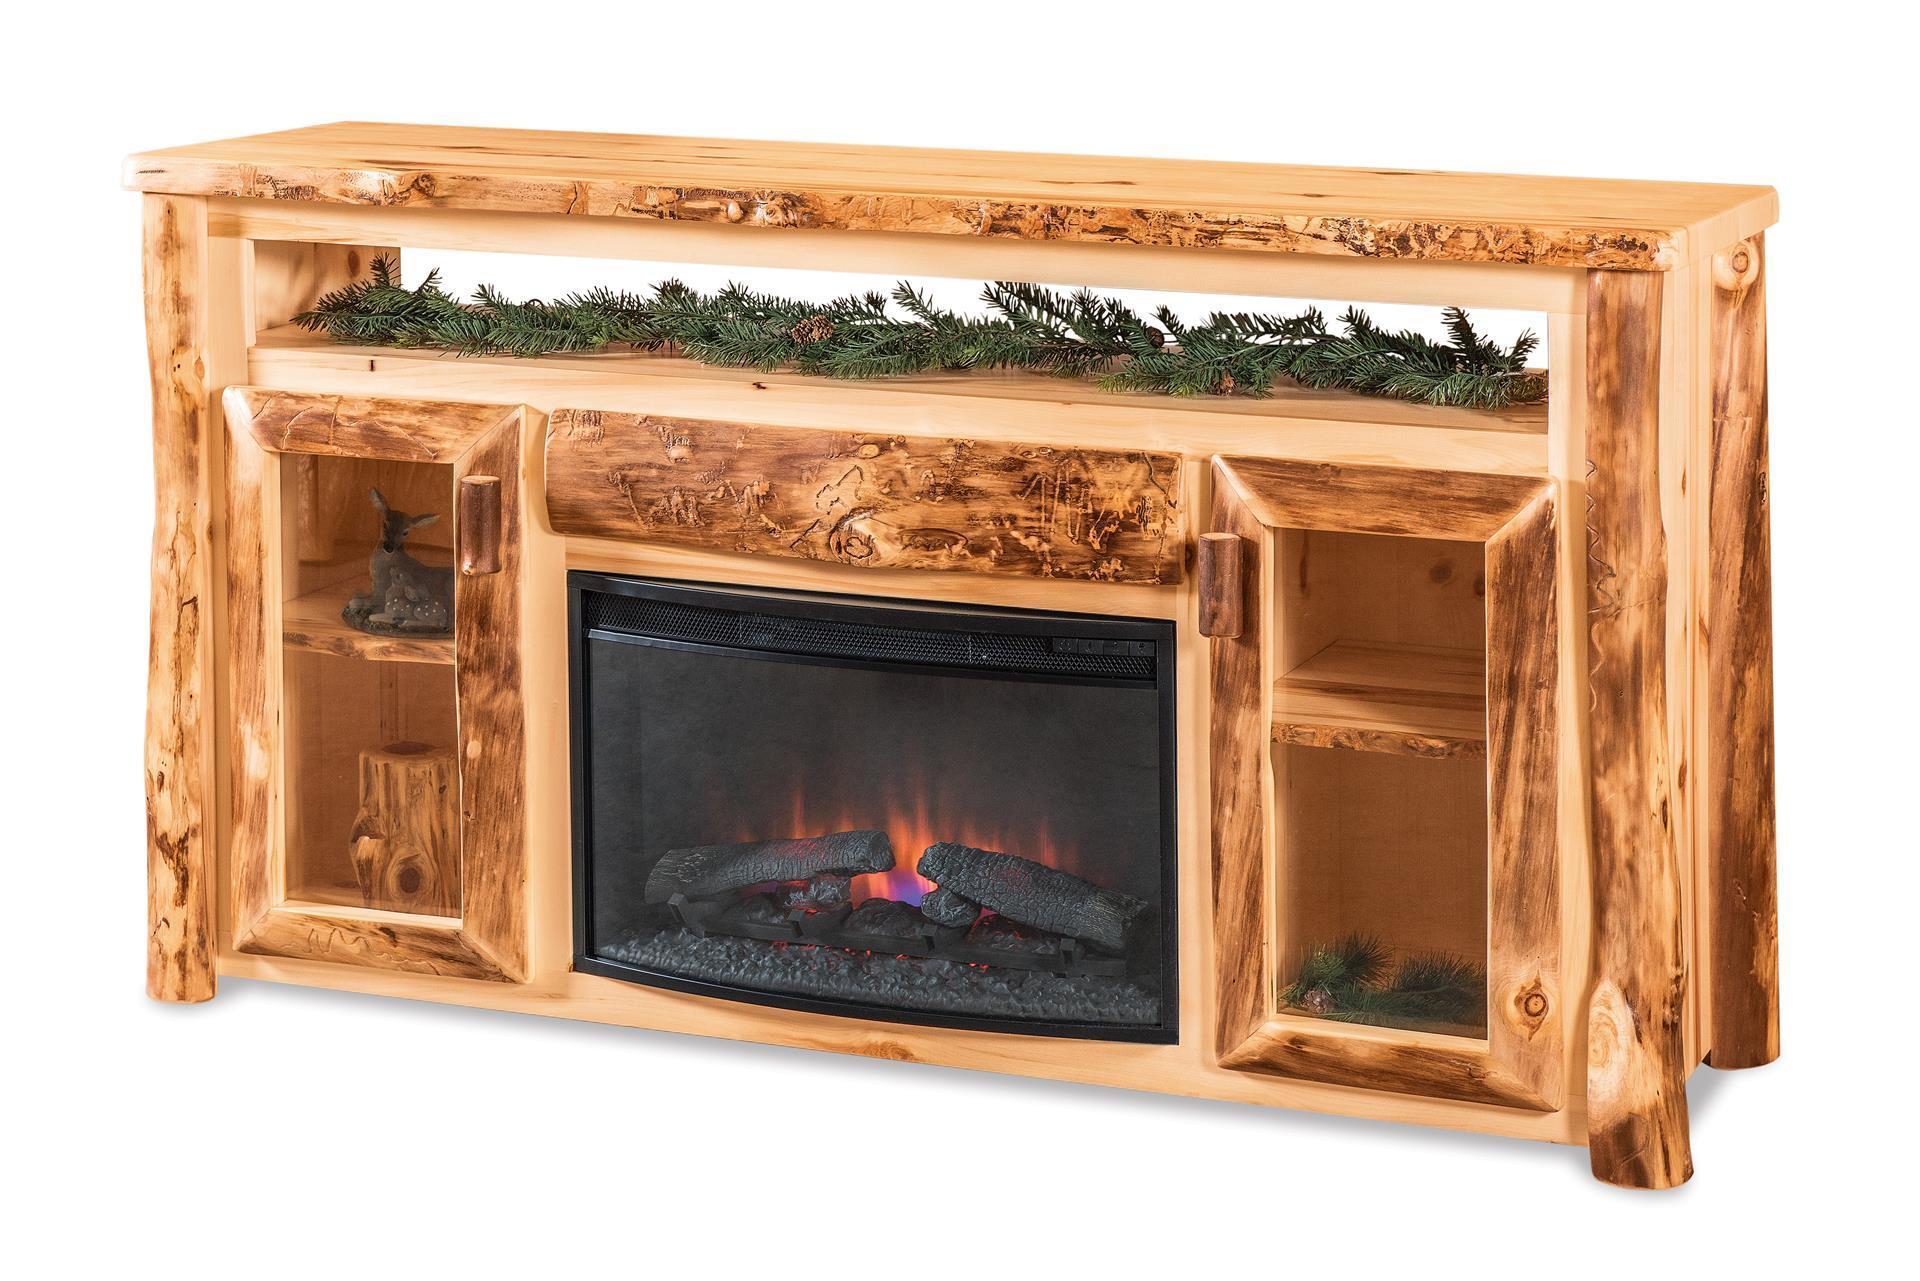 Rustic Log Tv Cabinet With Electric Fireplace From Dutchcrafters